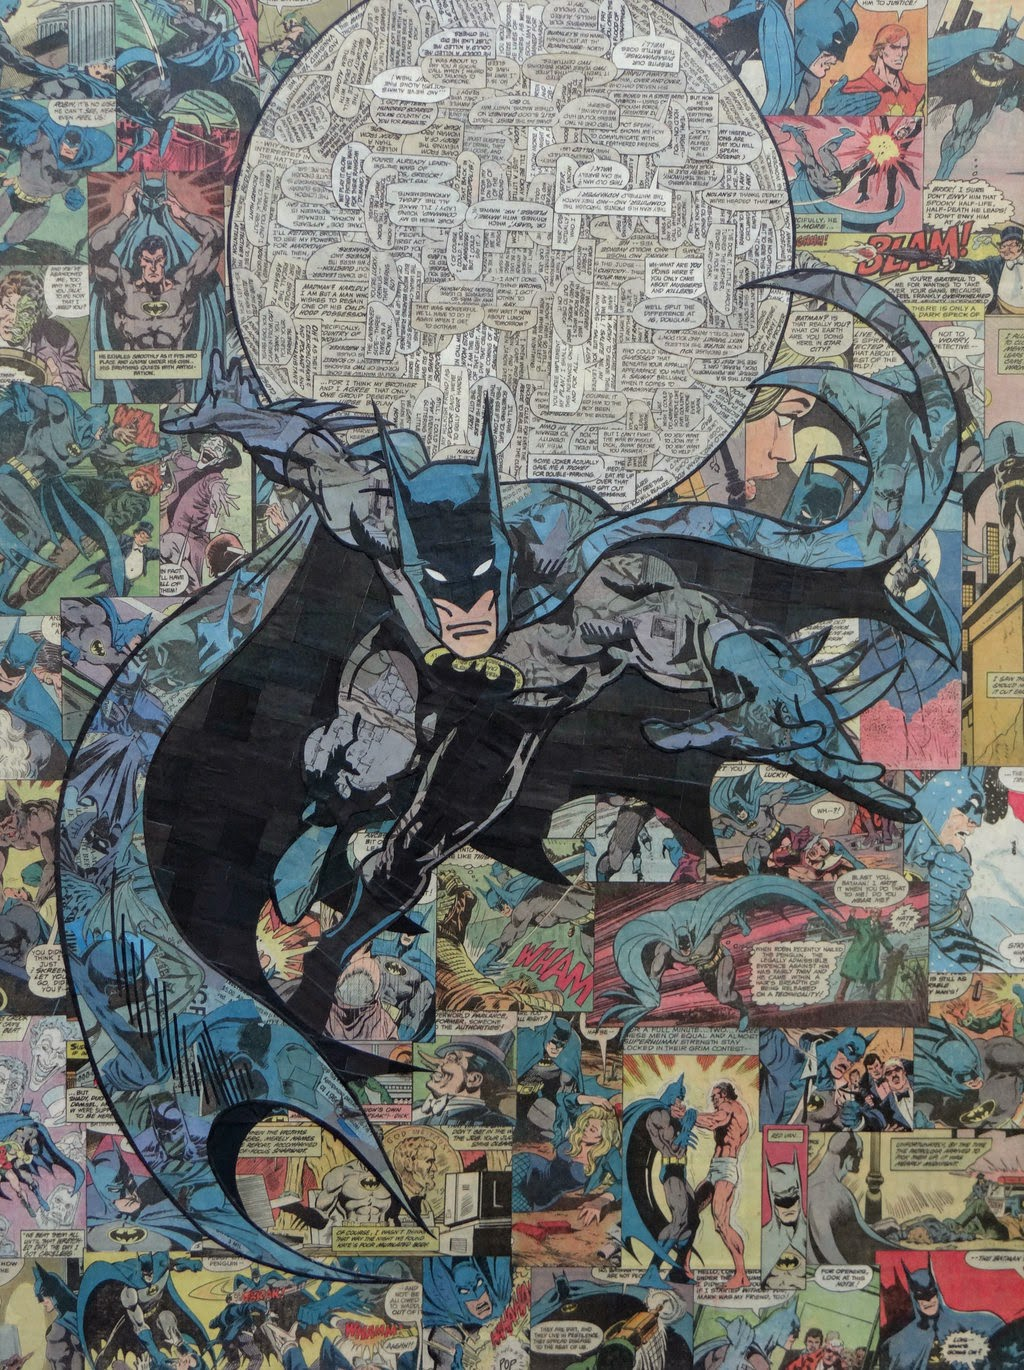 01-Batman-Mike-Alcantara-Comic-Collage-Art-www-designstack-co